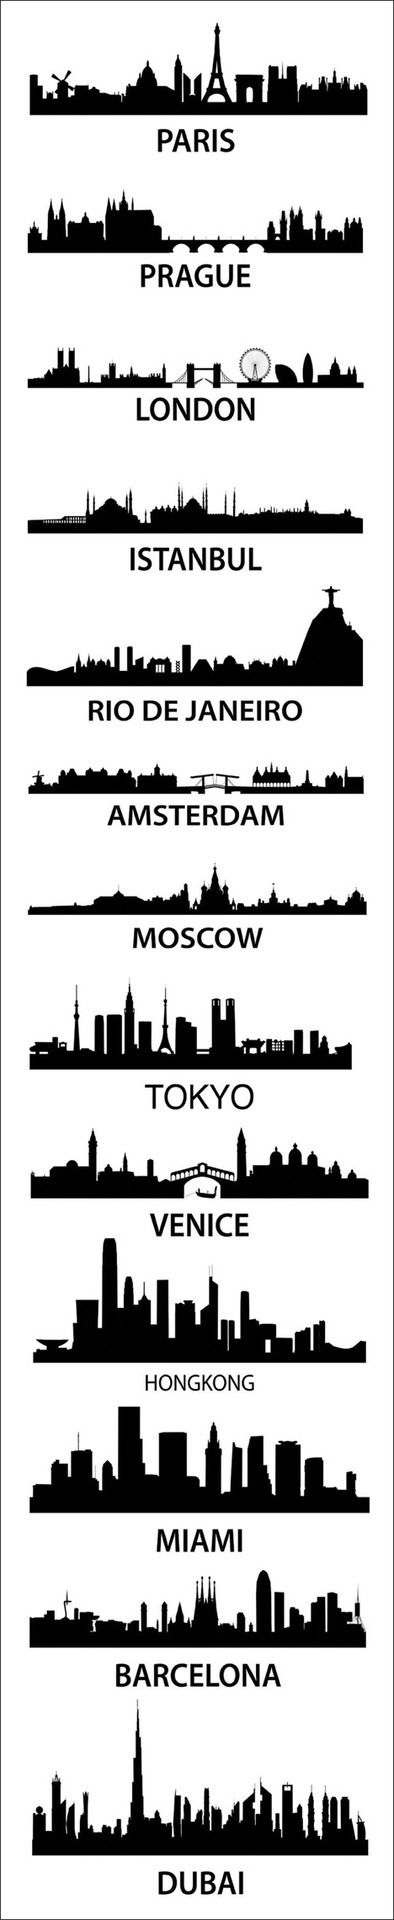 Iconic Skylines   Geography Education   Scoop.it